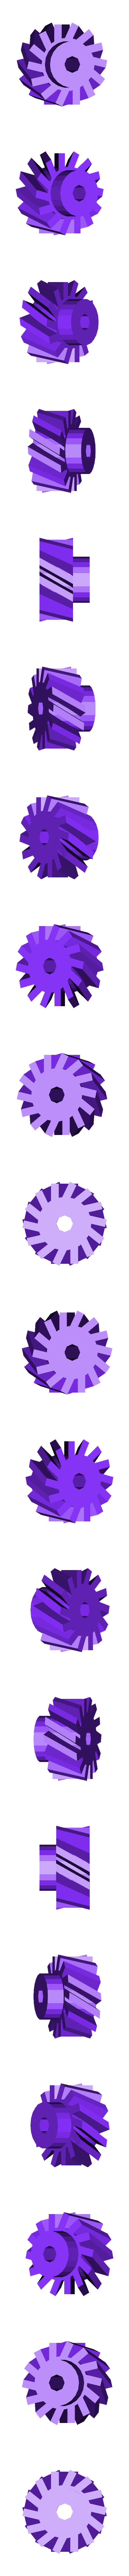 helical_sm.stl Download free STL file OpenSCAD Helical Gears • 3D printing object, AlbertKhan3D